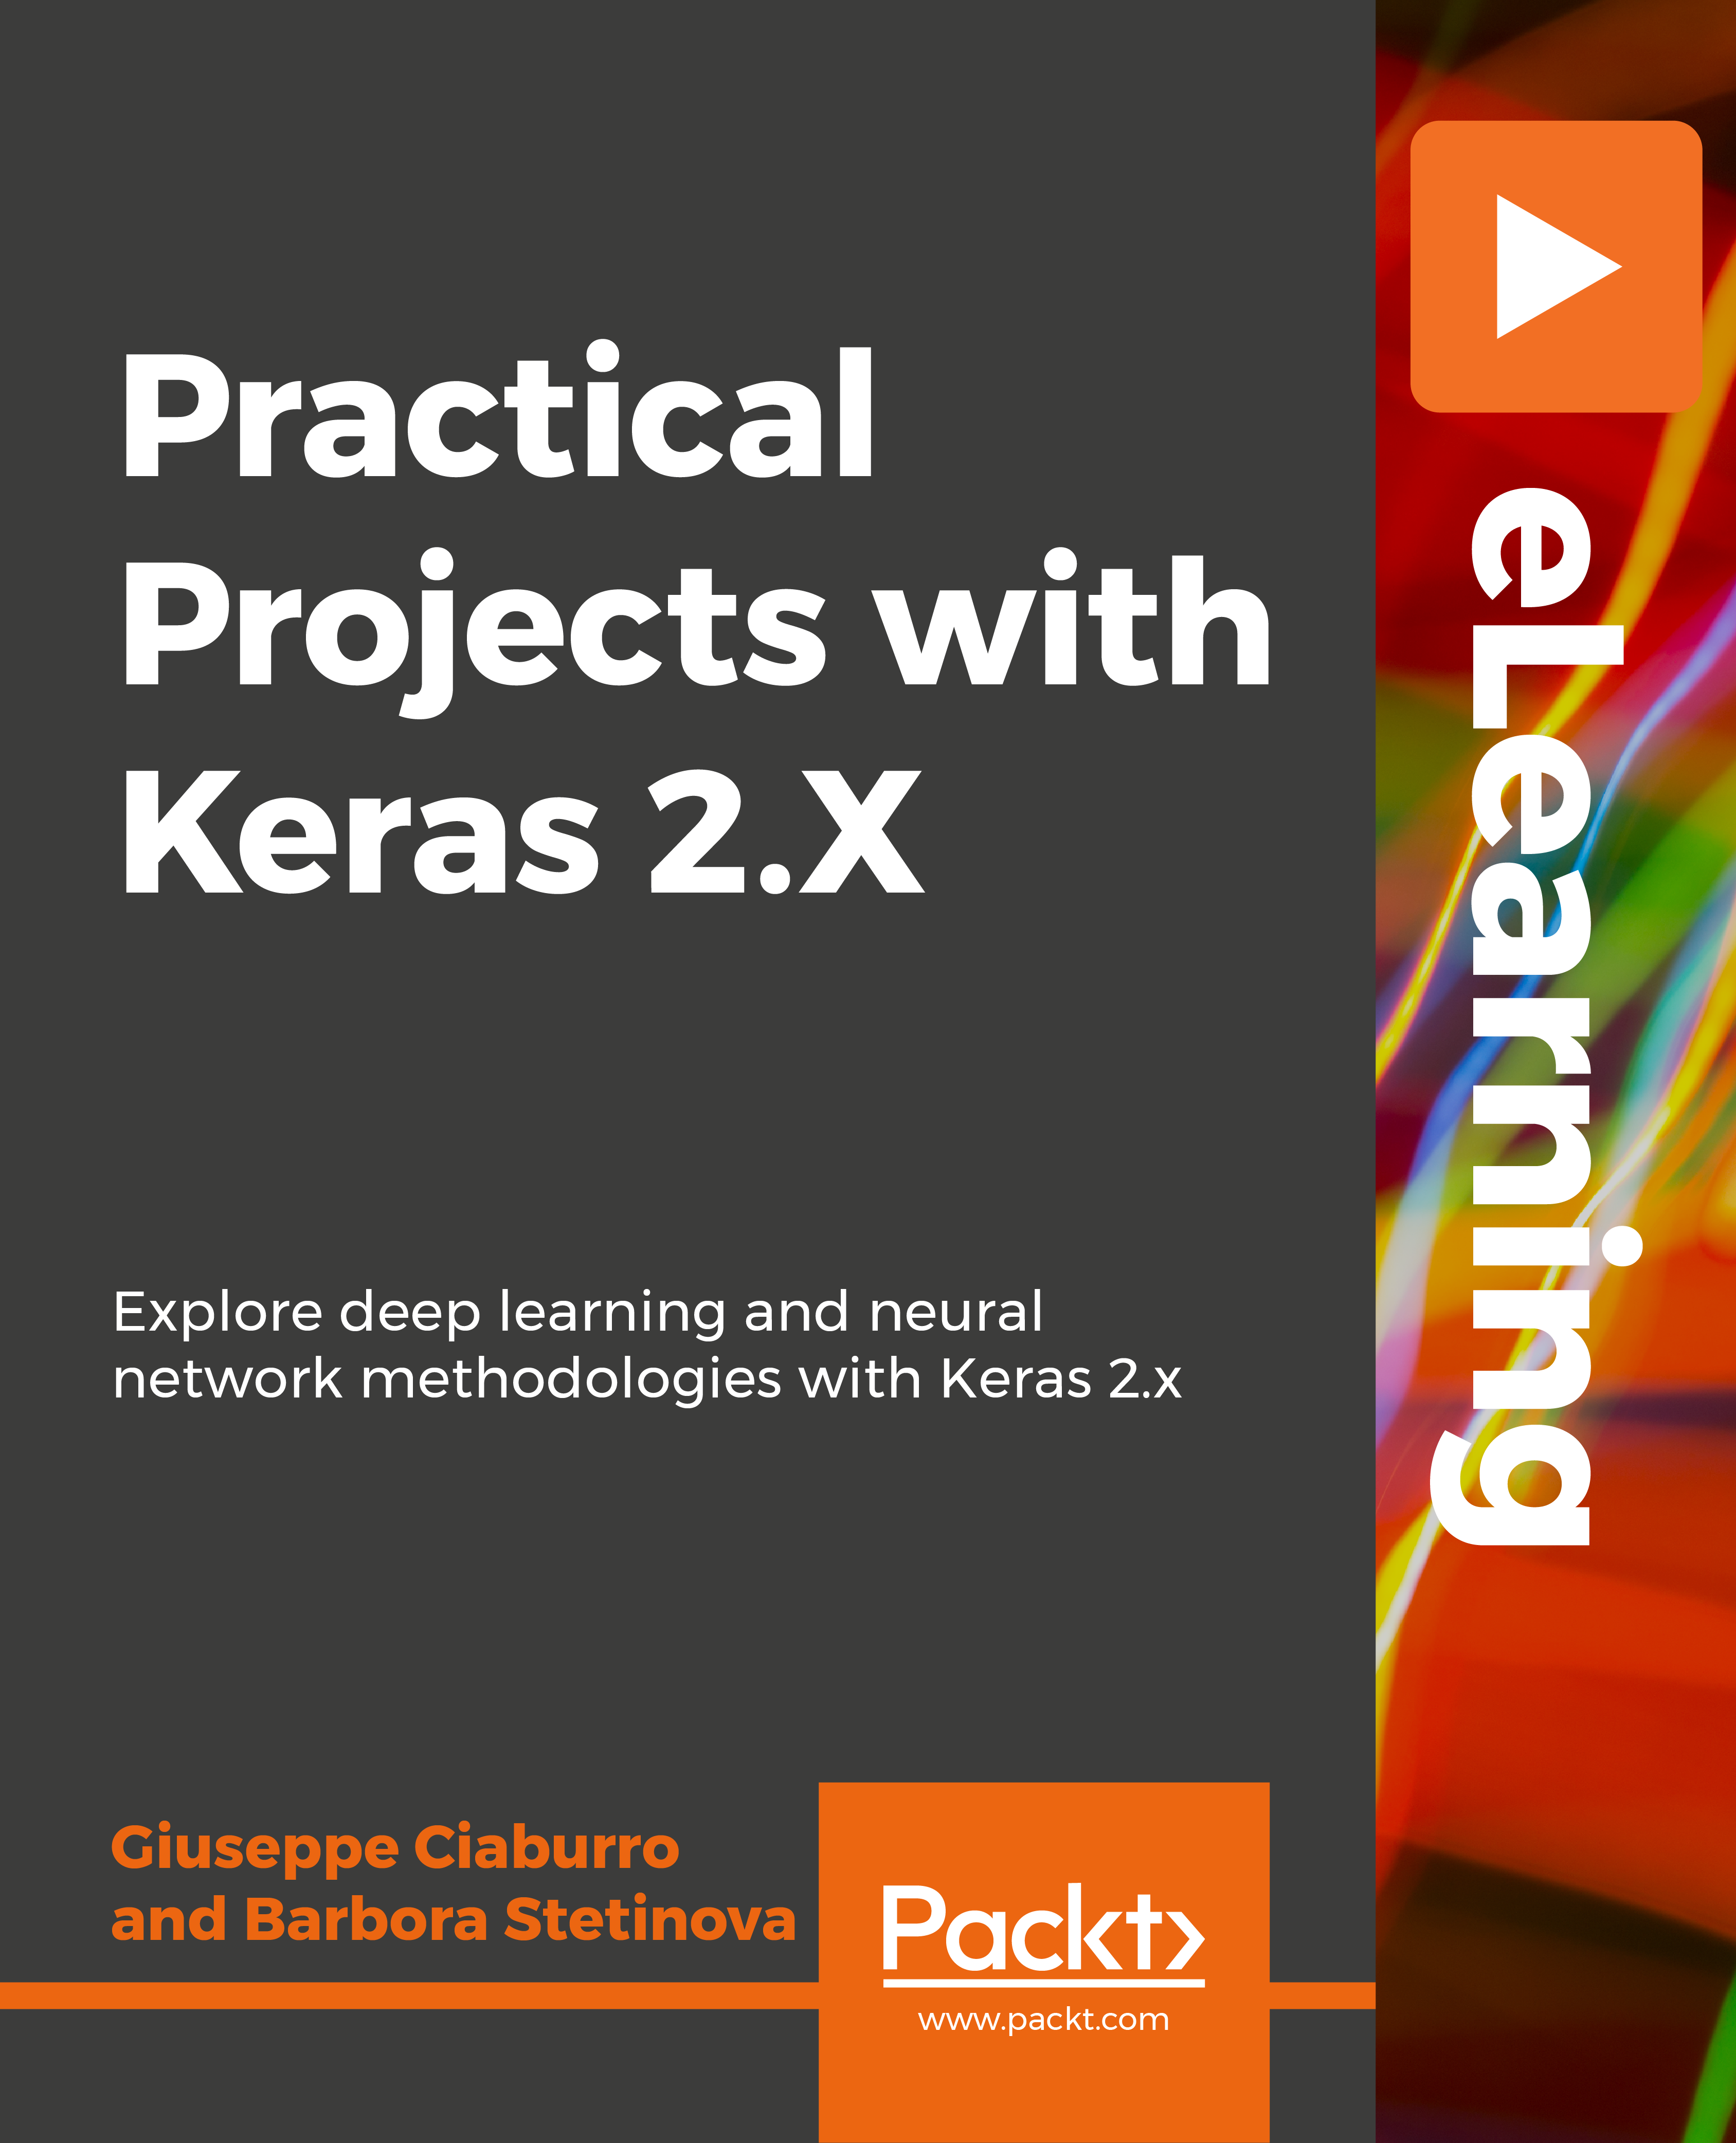 Practical Projects with Keras 2.X